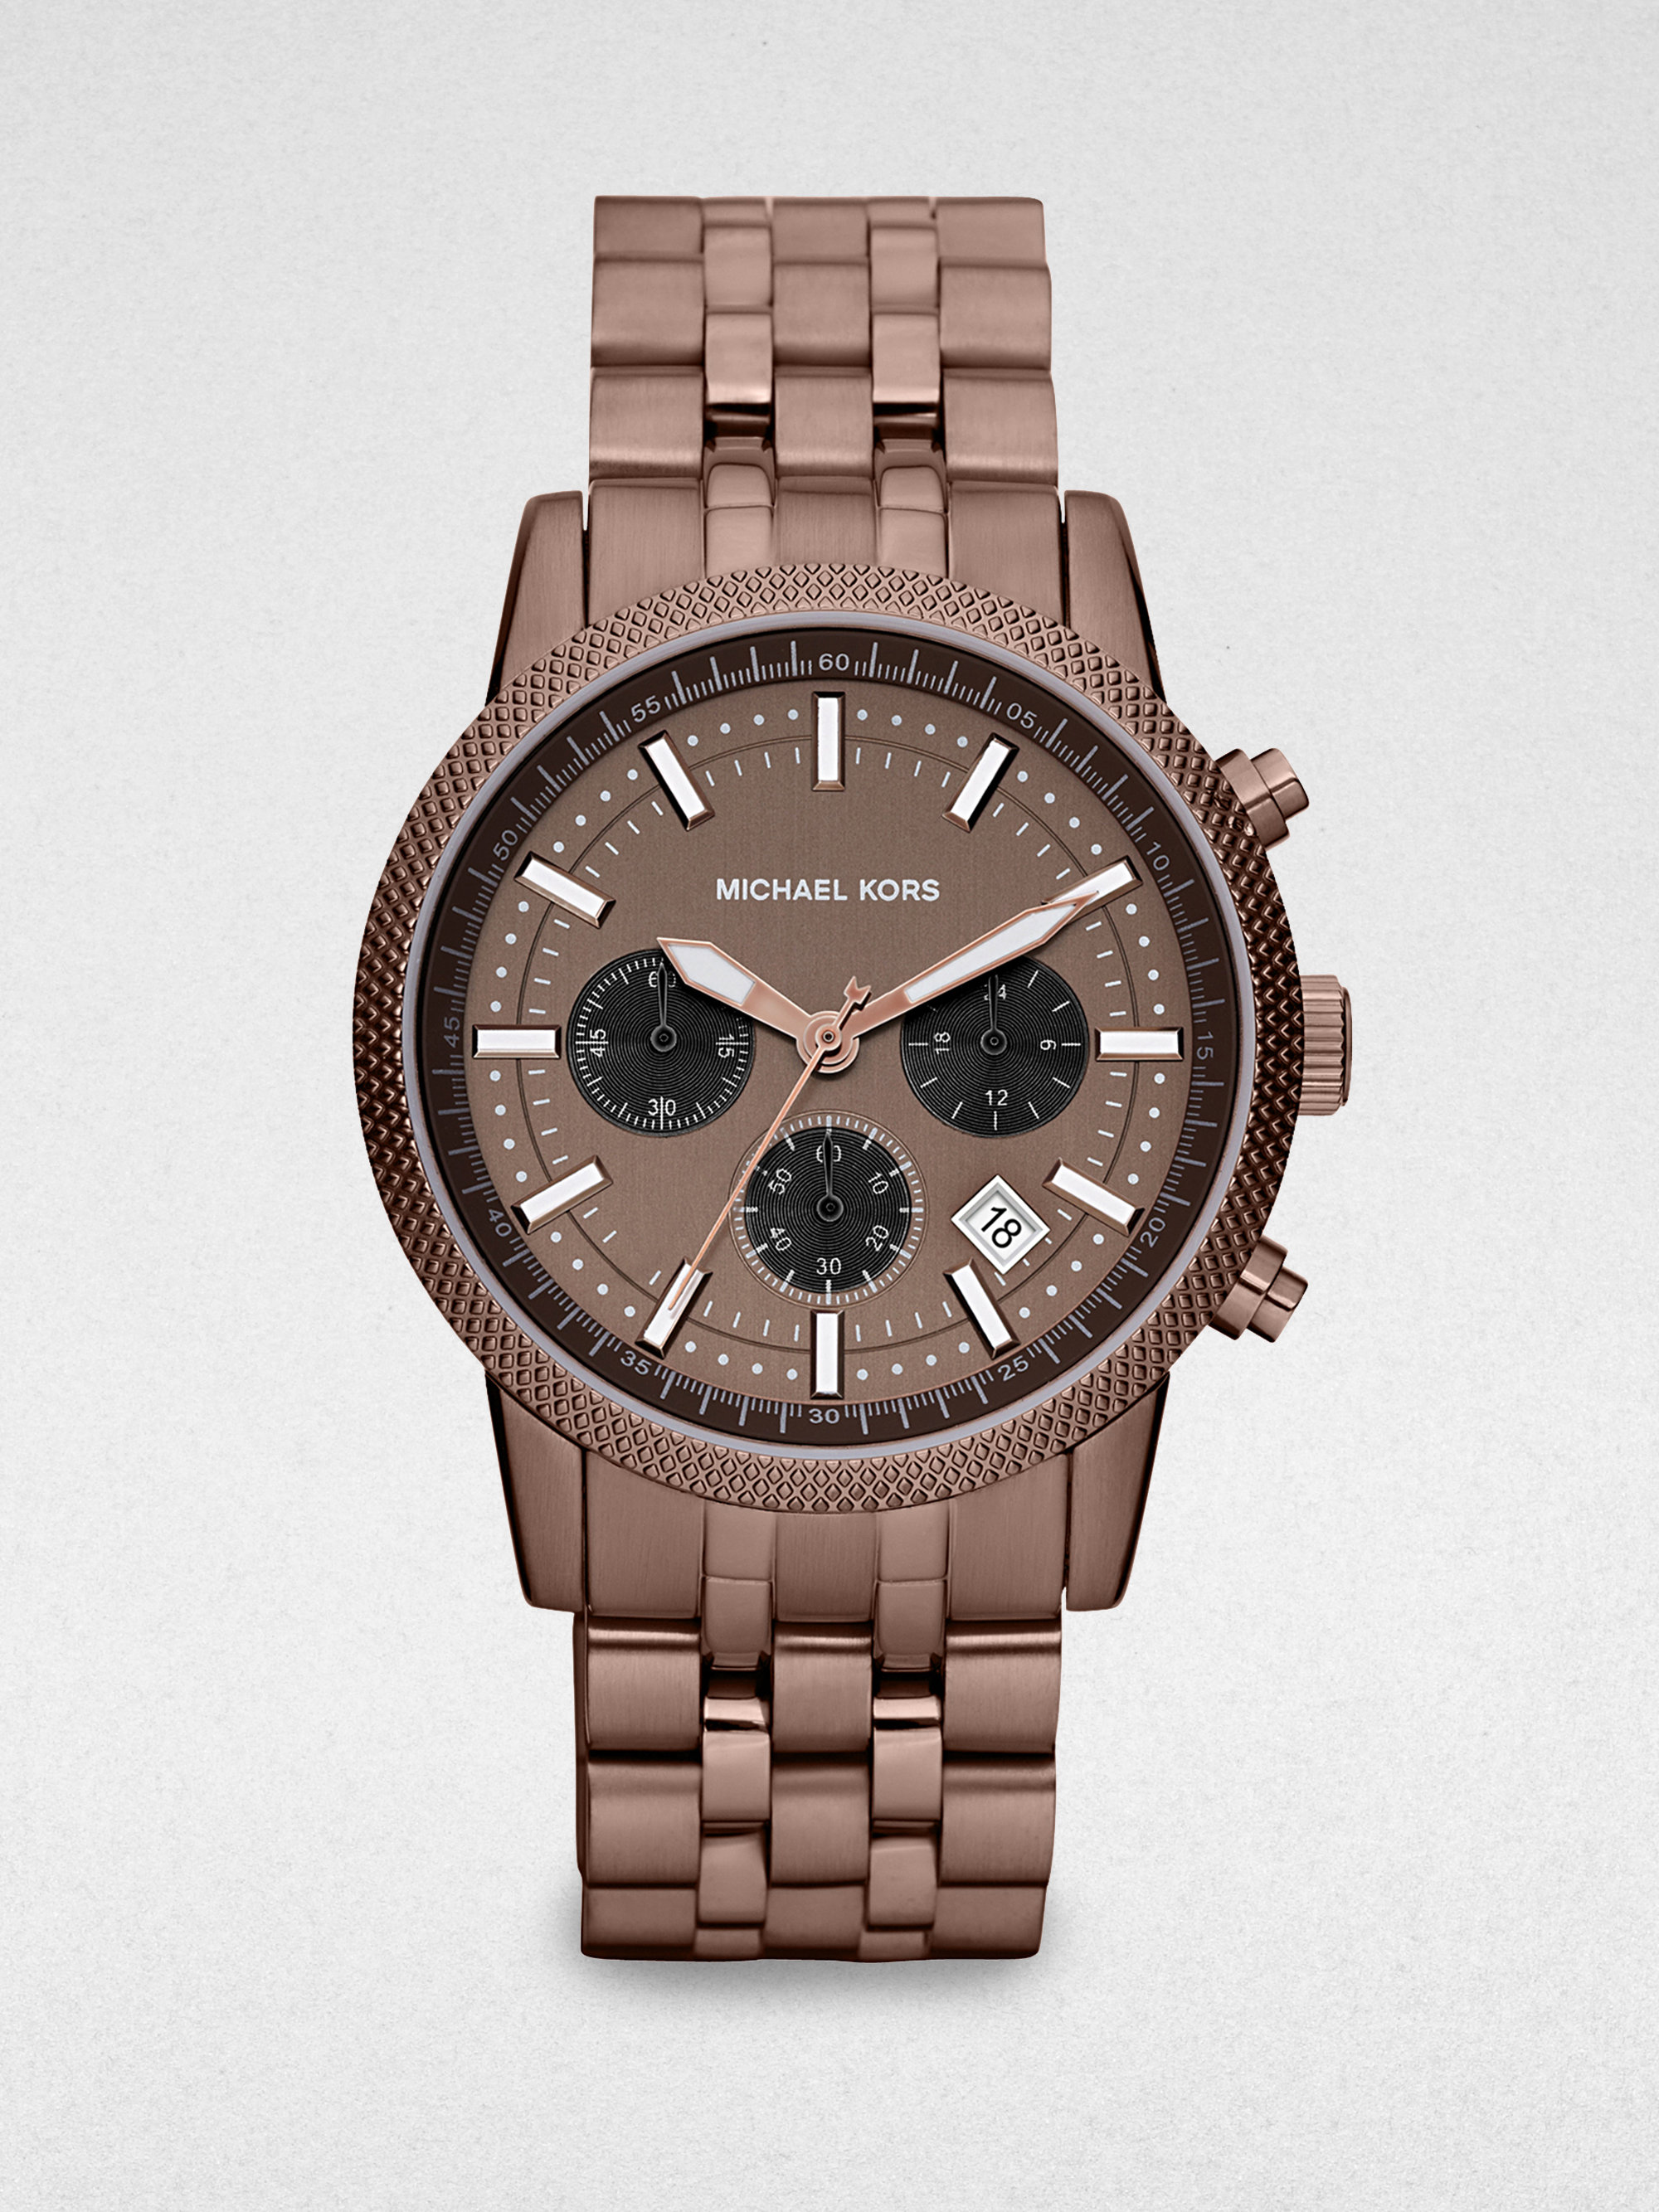 Michael kors stainless steel chronograph watch in brown